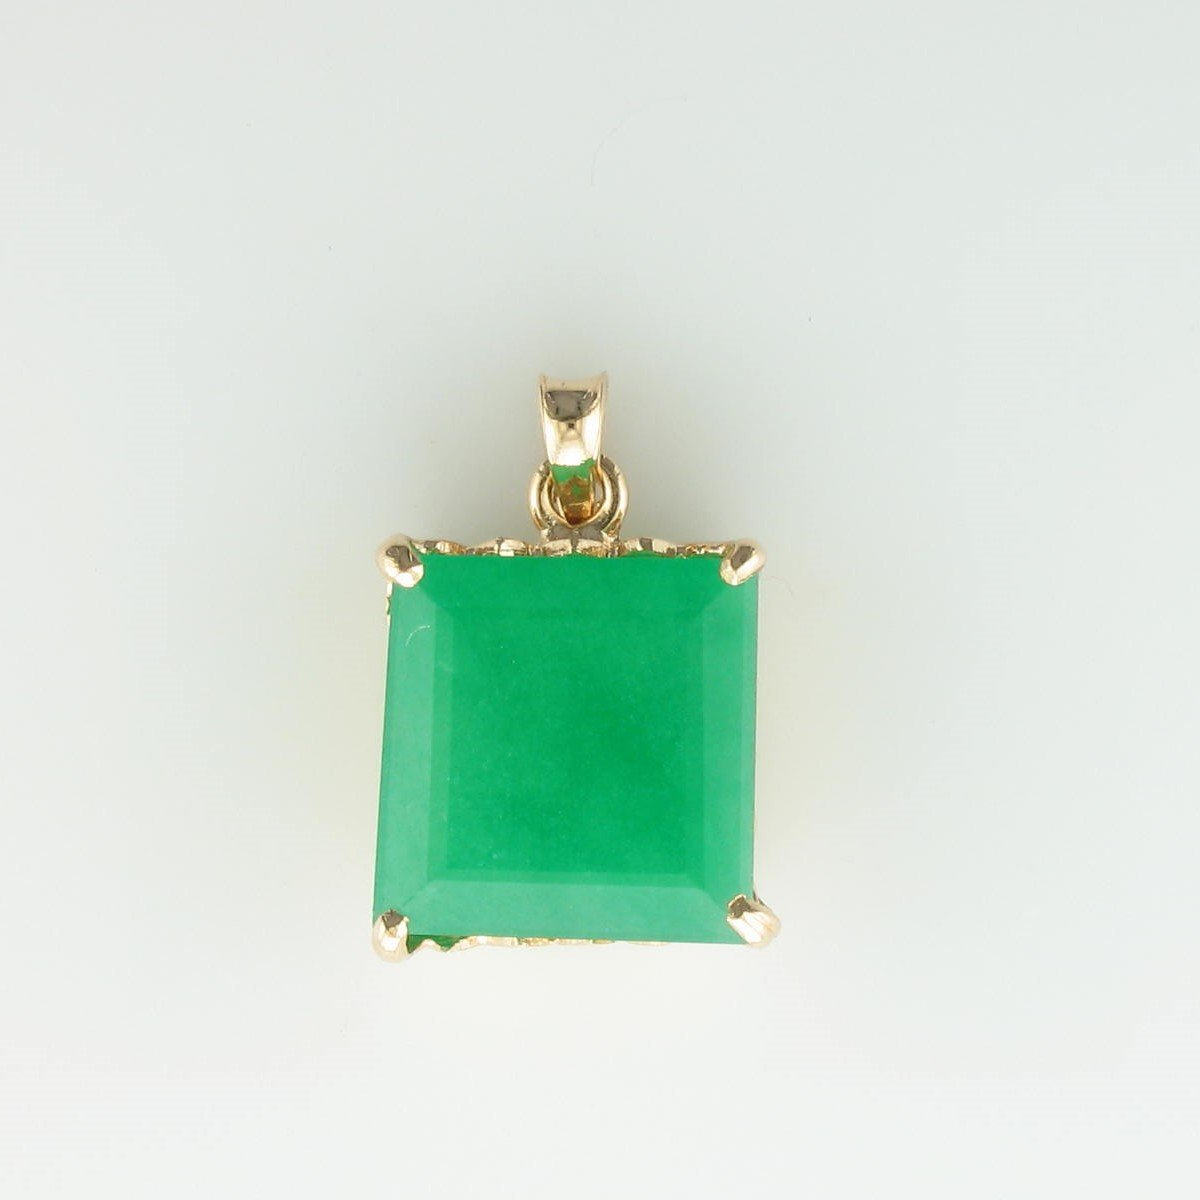 10ct Emerald Pendant set in 10K Yellow Gold